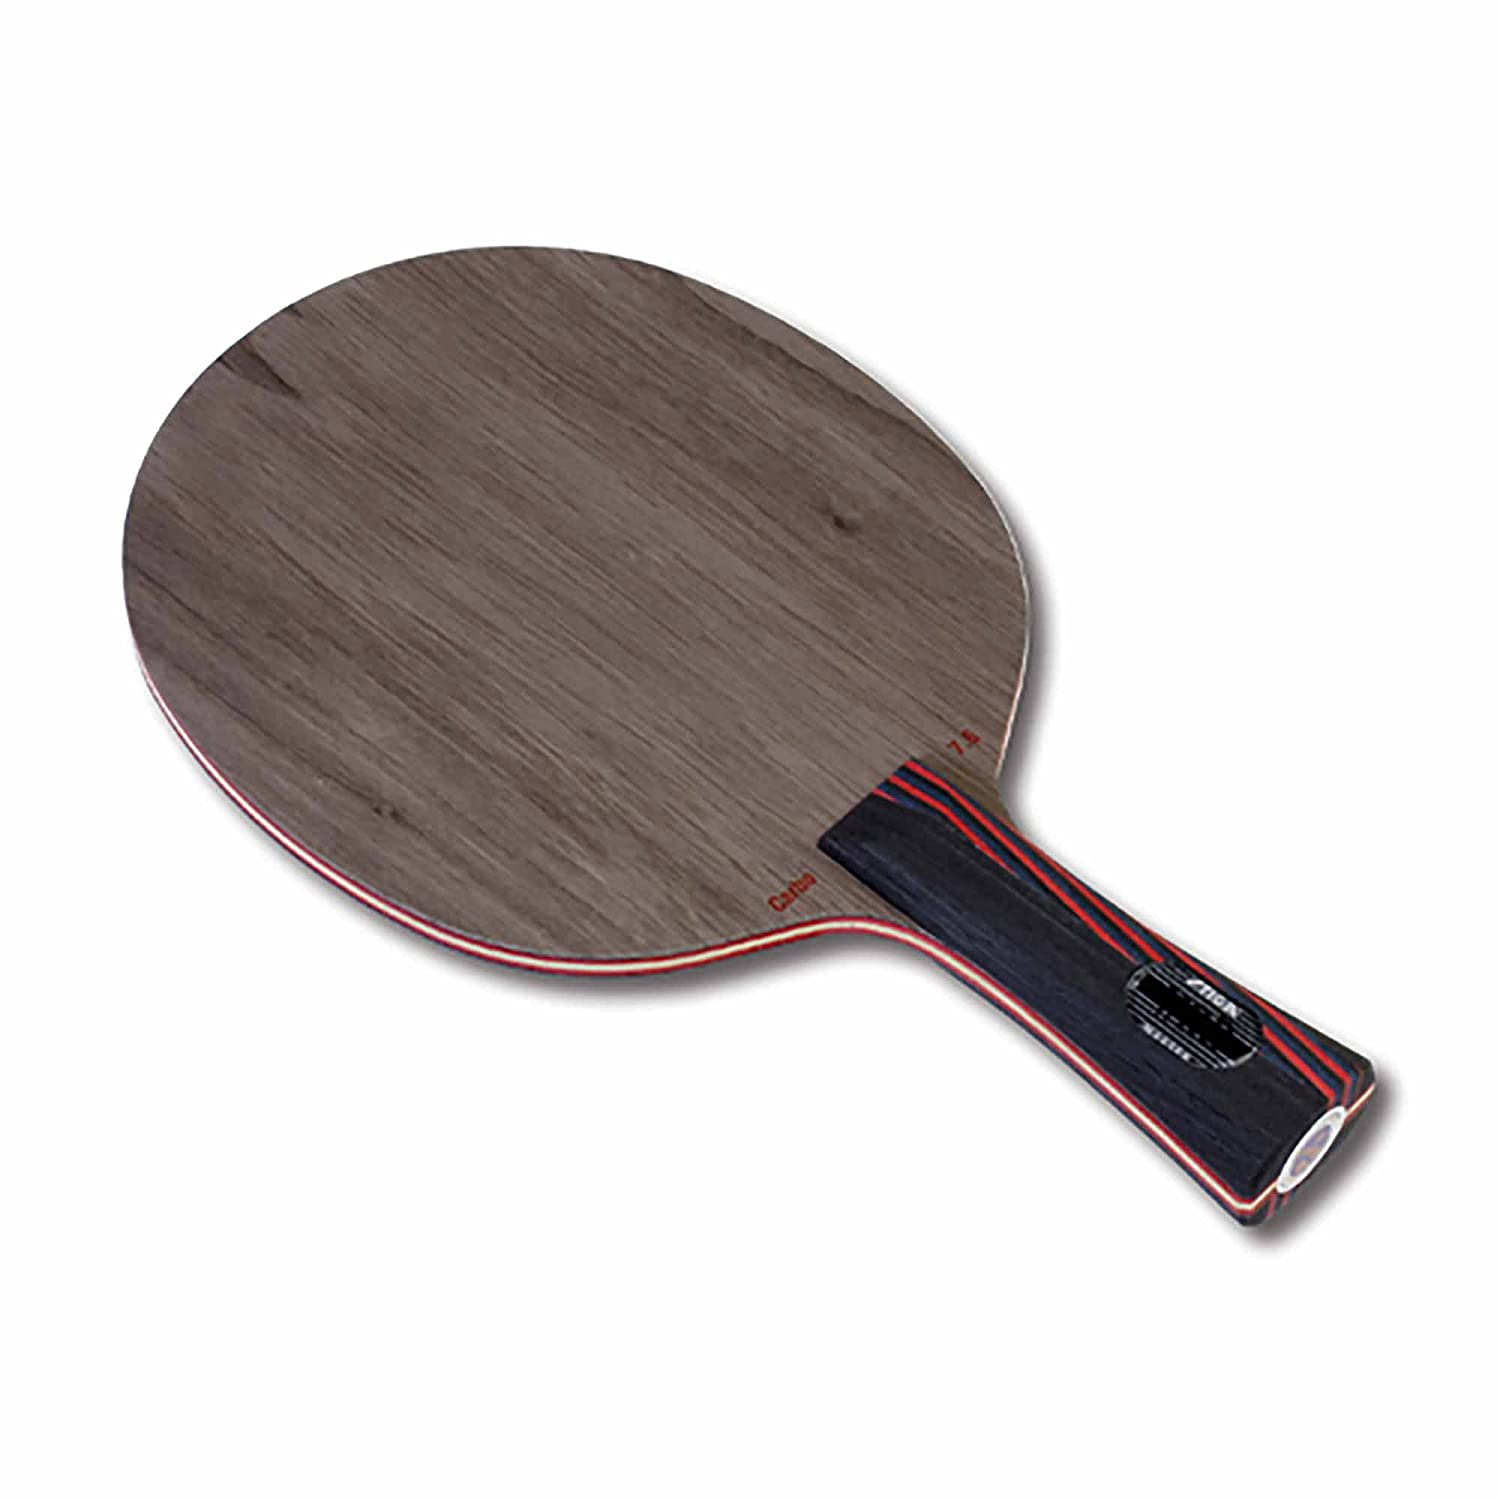 Table Tennis Blade Stiga Carbo 7.6/WRB Wood One Size Master Grip